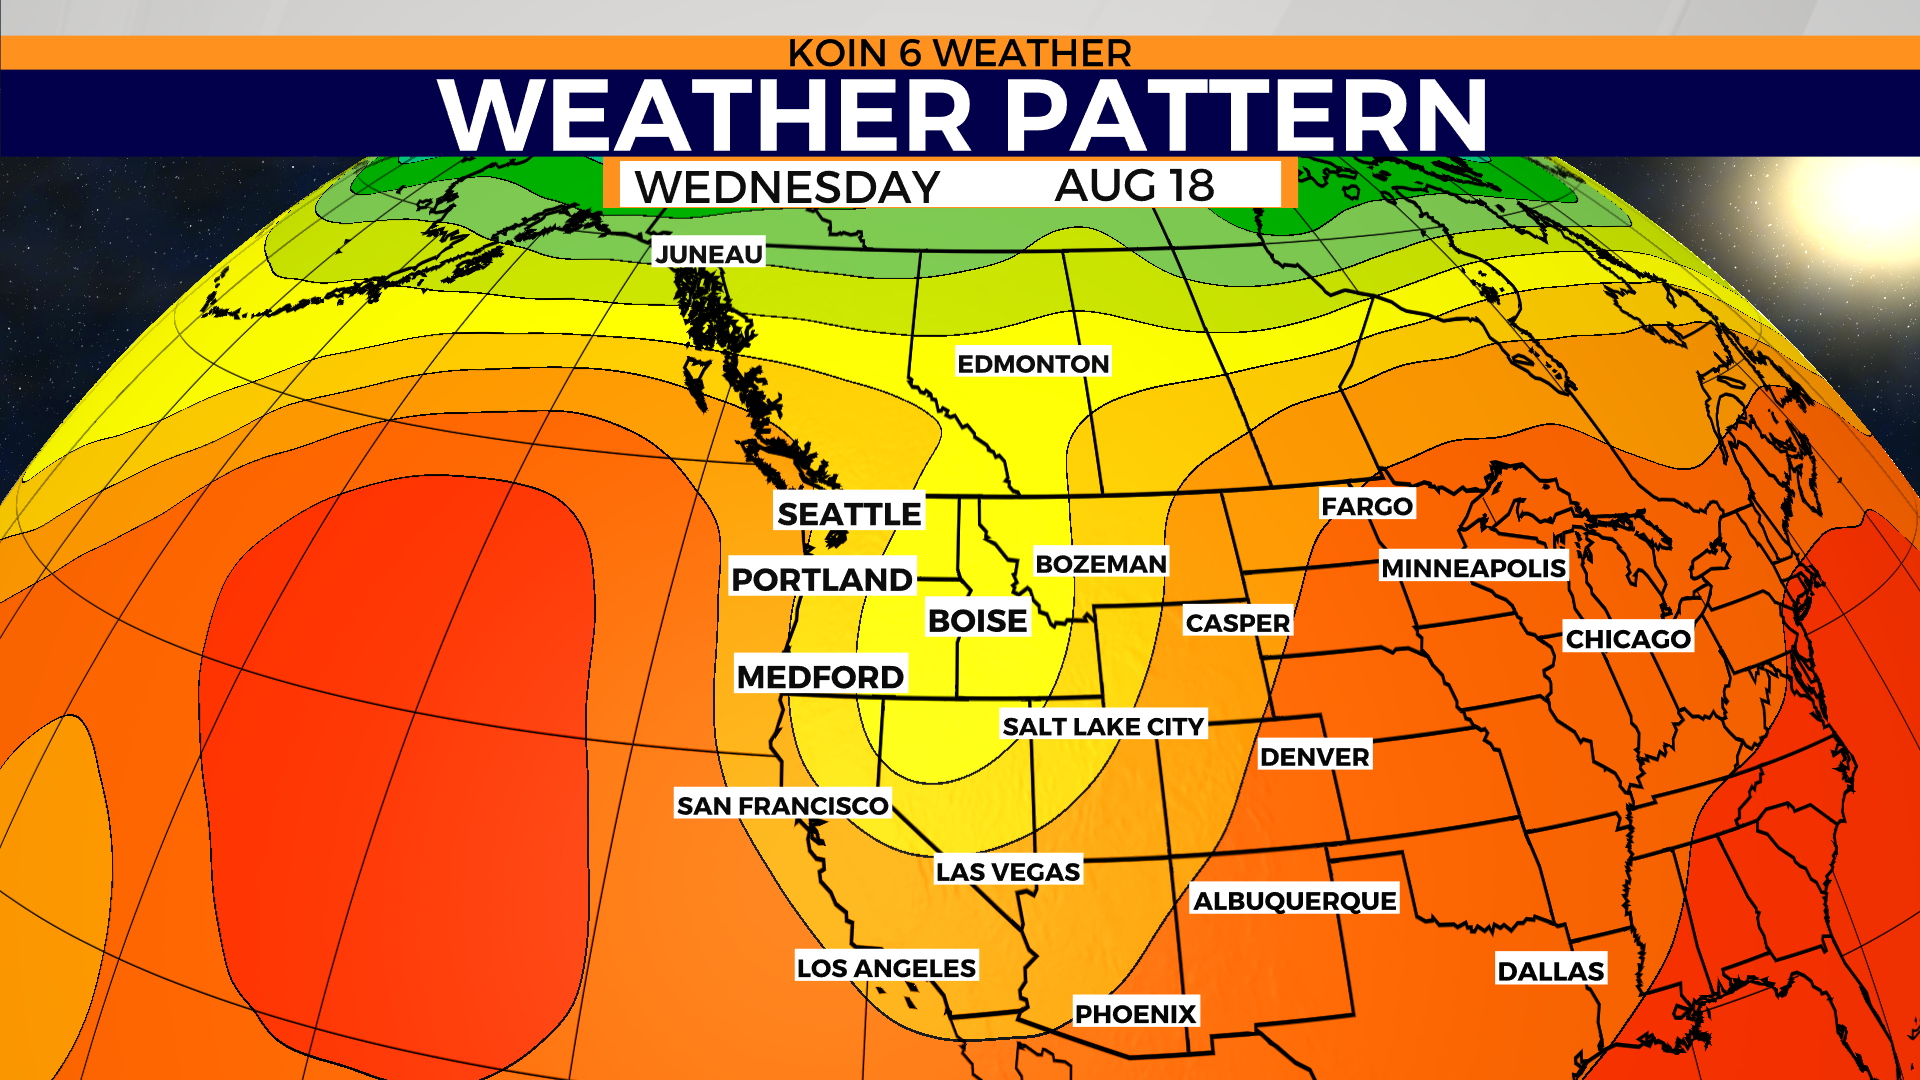 Go ahead, brag about August weather this week